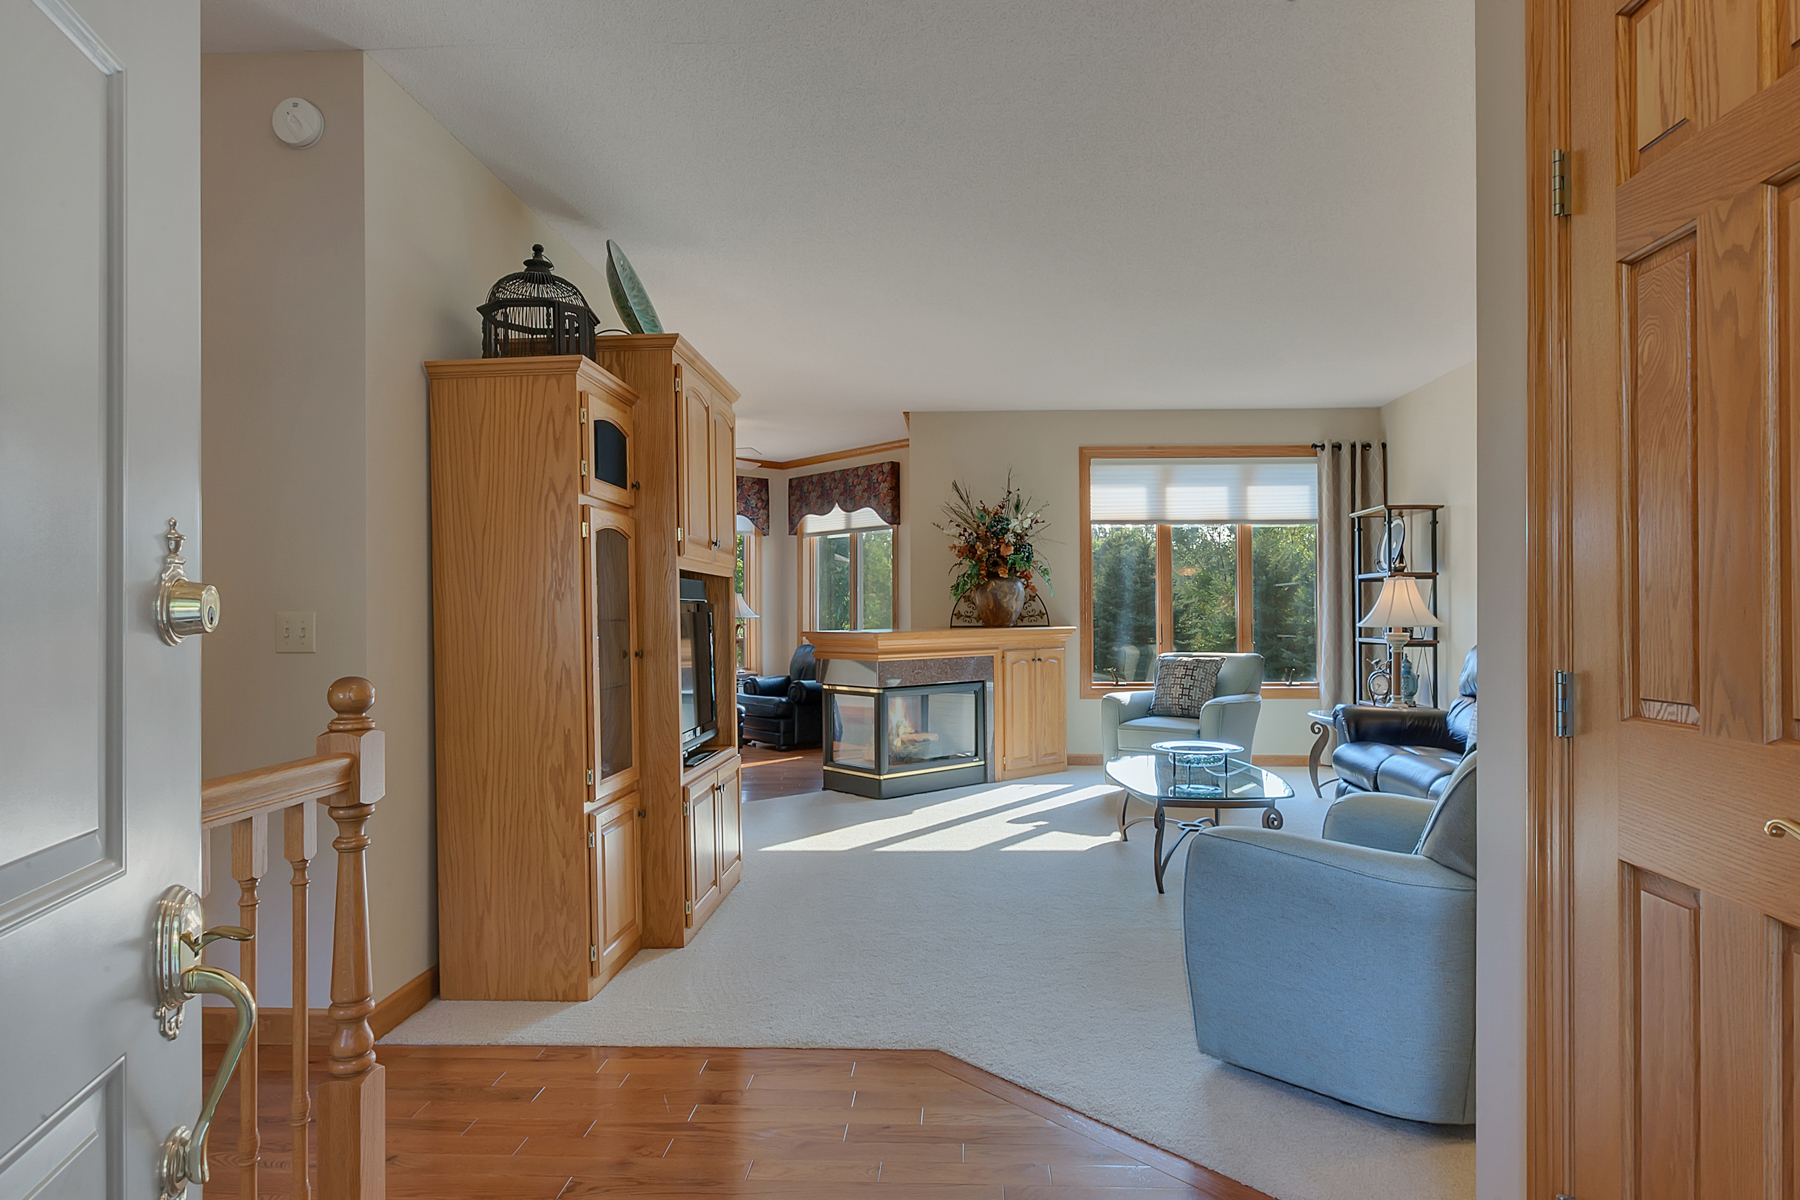 Here is the Fresh Picture Of Patio Homes for Sale St Cloud Mn